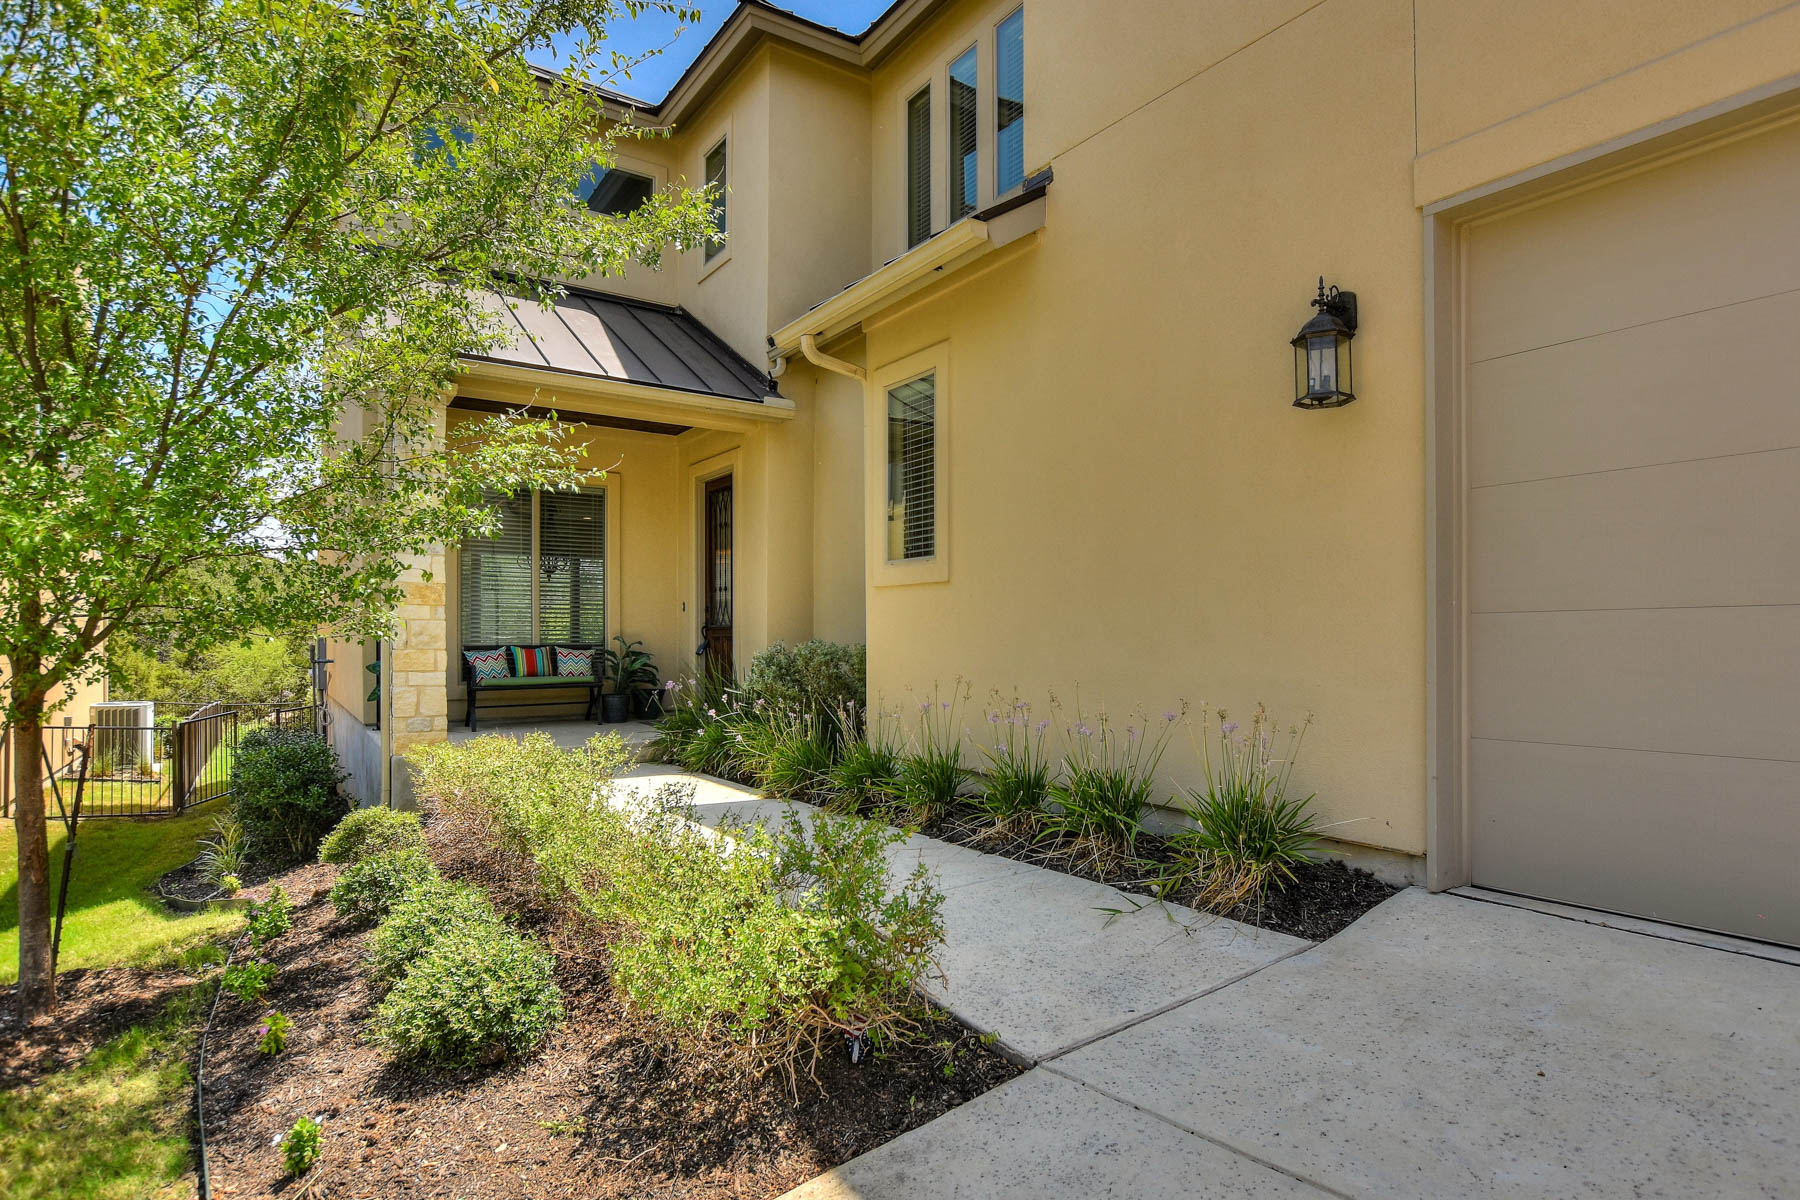 Single Family Home for Sale at A Home for Those Desiring a Carefree Lifestyle 4616 Avery Way San Antonio, Texas 78261 United States